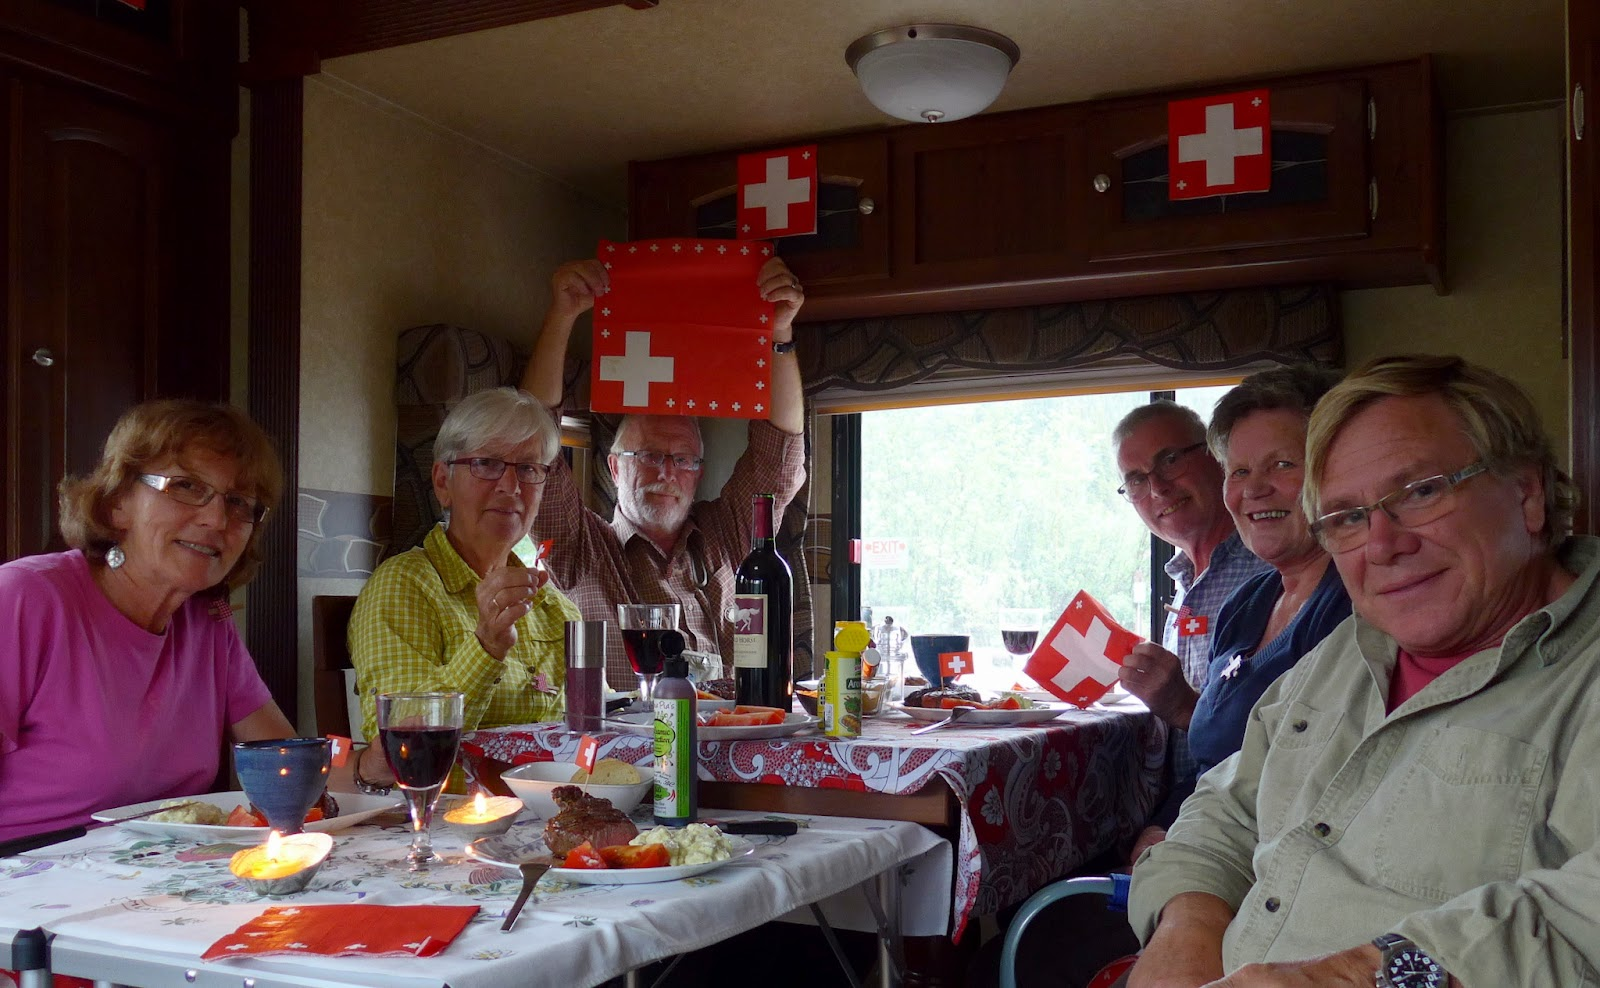 Celebrating the Swiss National Holiday